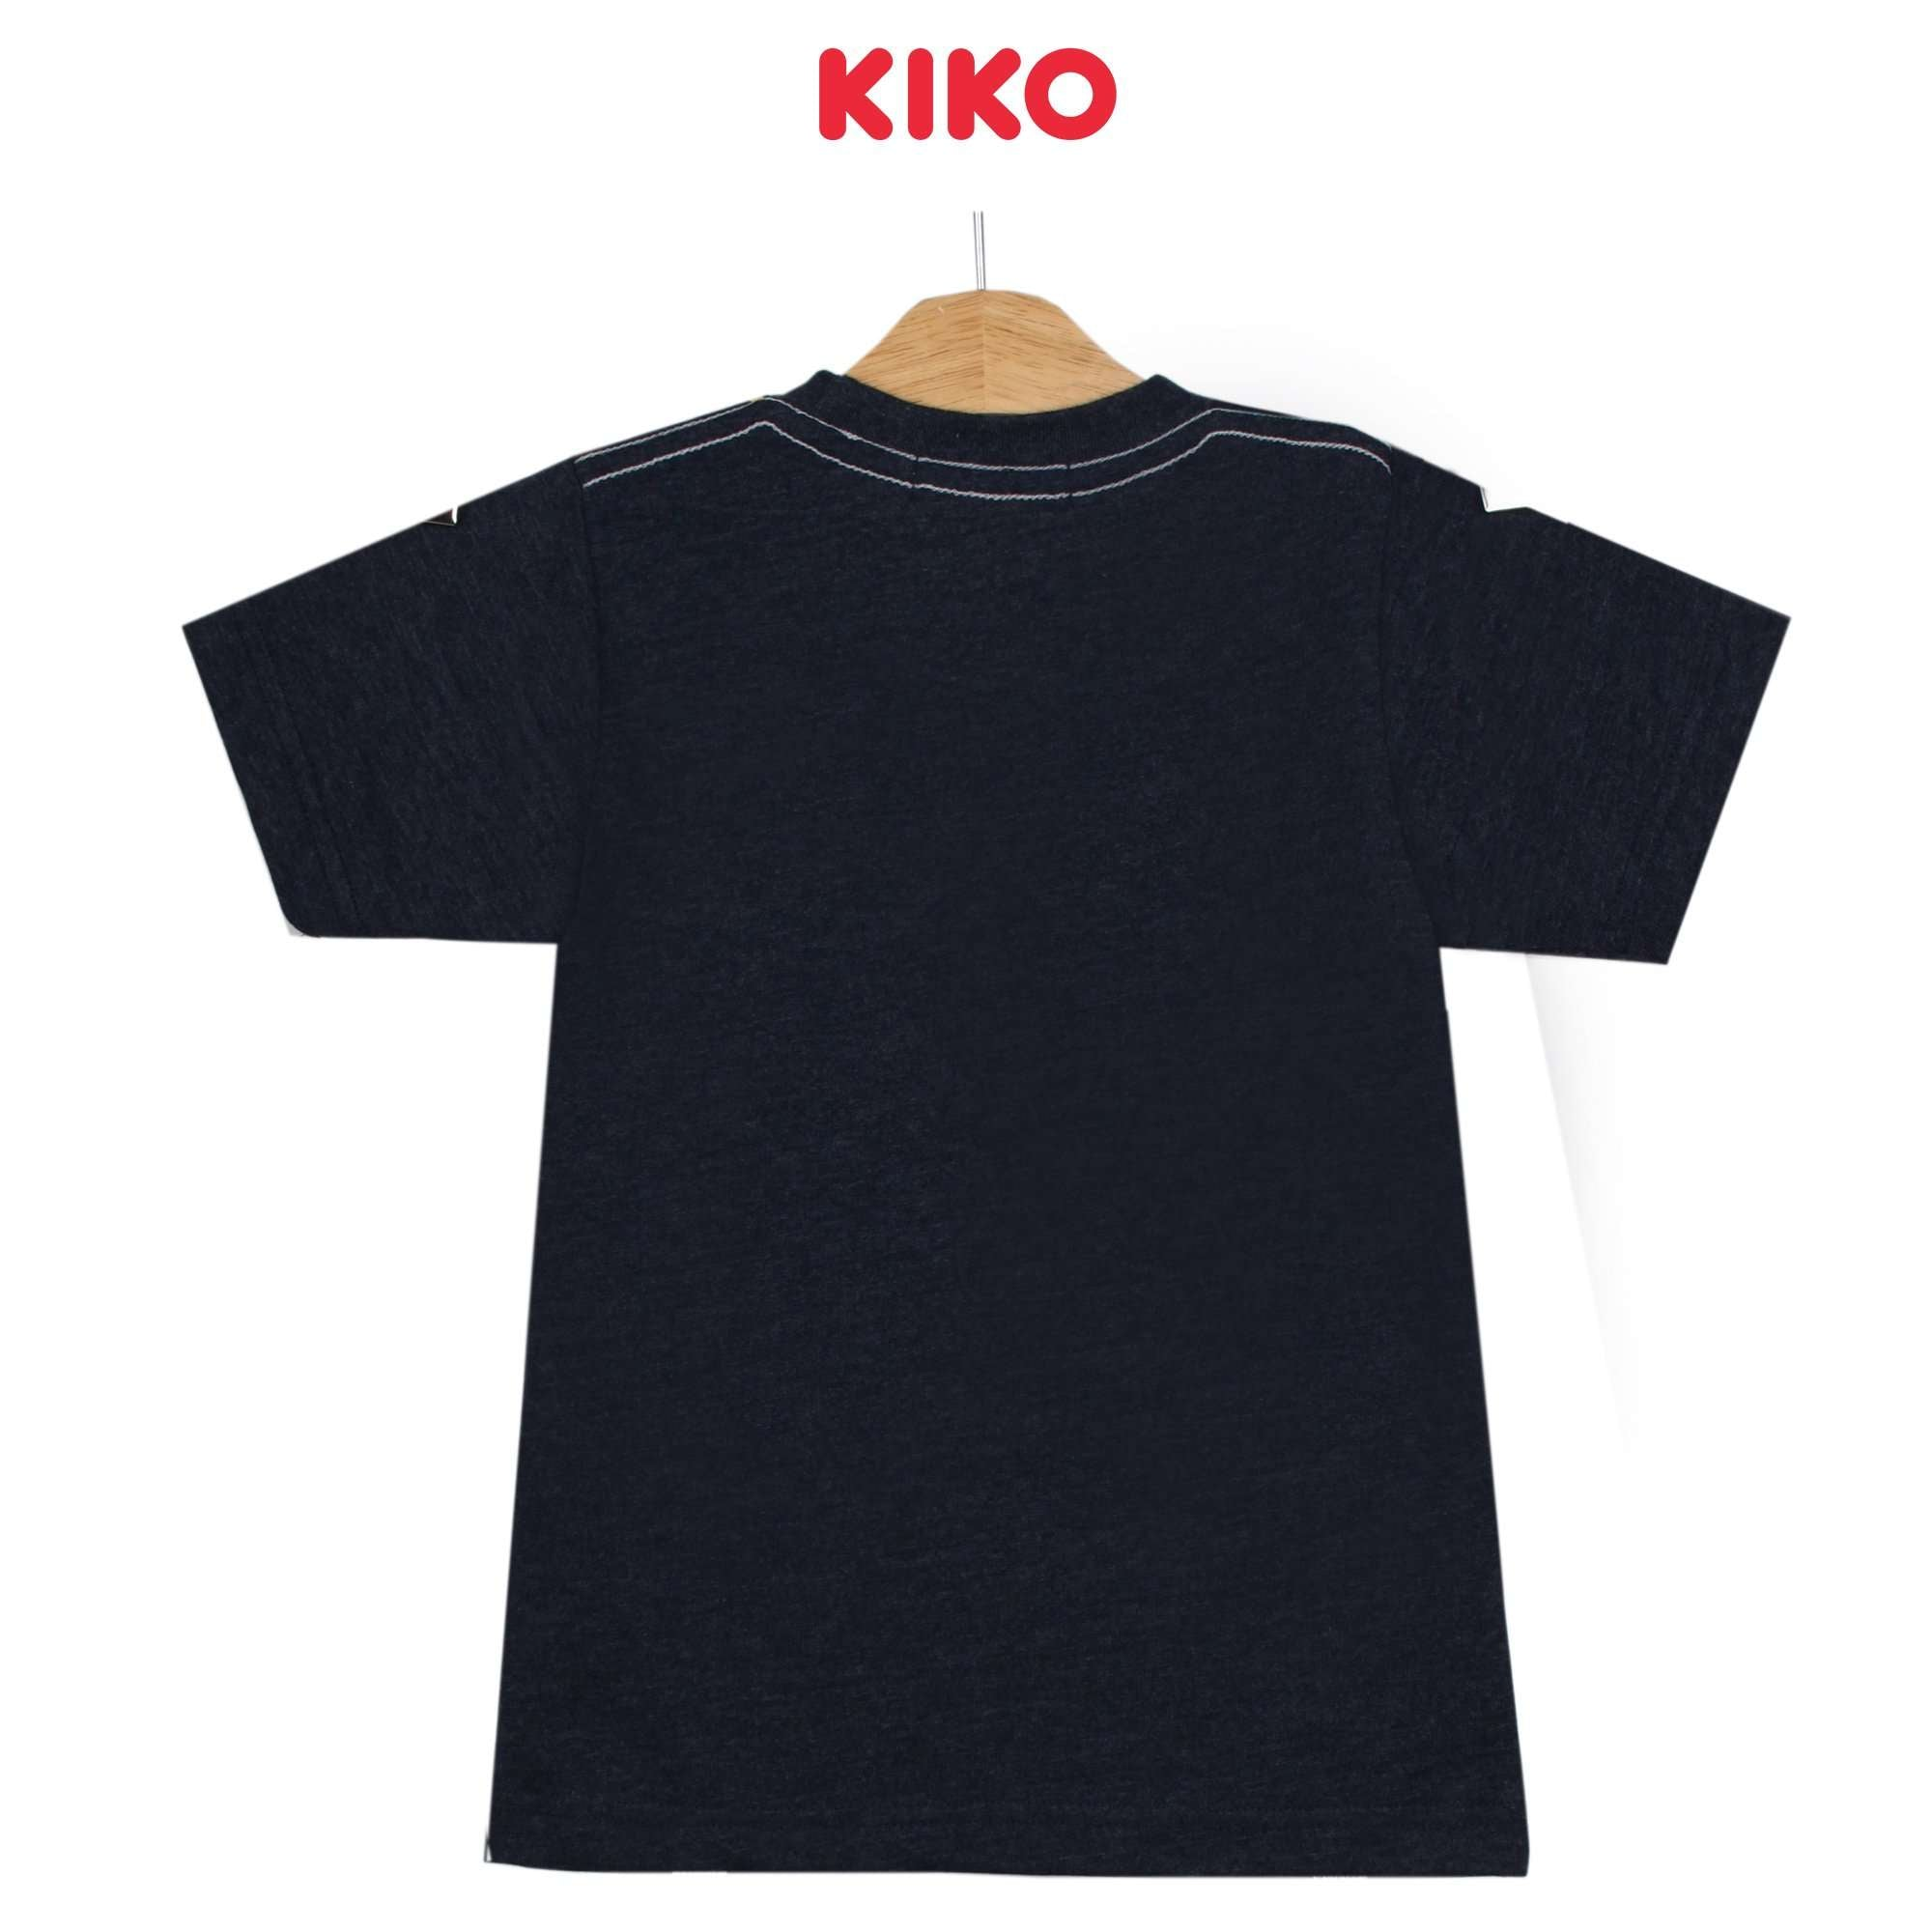 KIKO Boy Short Sleeve Tee - Melange Navy 130090-113 : Buy KIKO online at CMG.MY